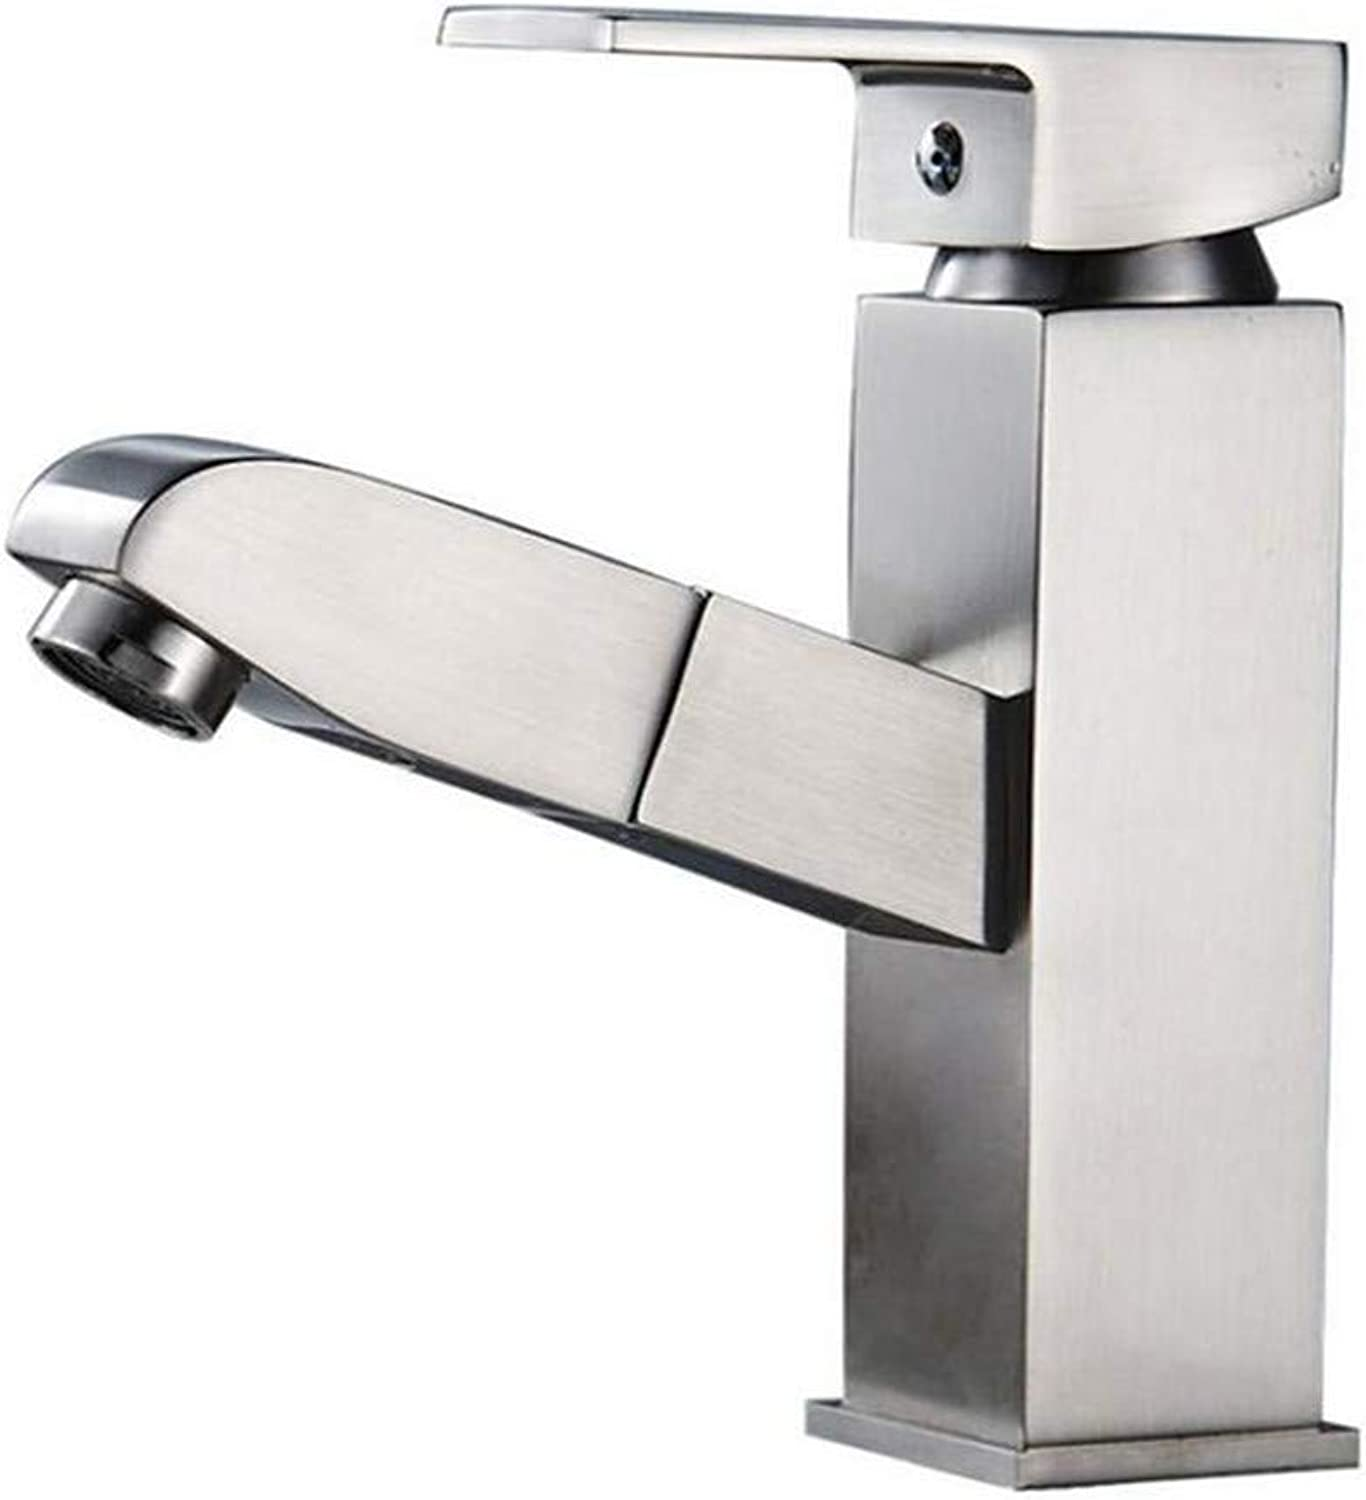 Modern Brass Chrome Hot and Cold Water Sink Taps Bathroom Taps Full Copper Drawing Wire Drawing Tap Water Tap